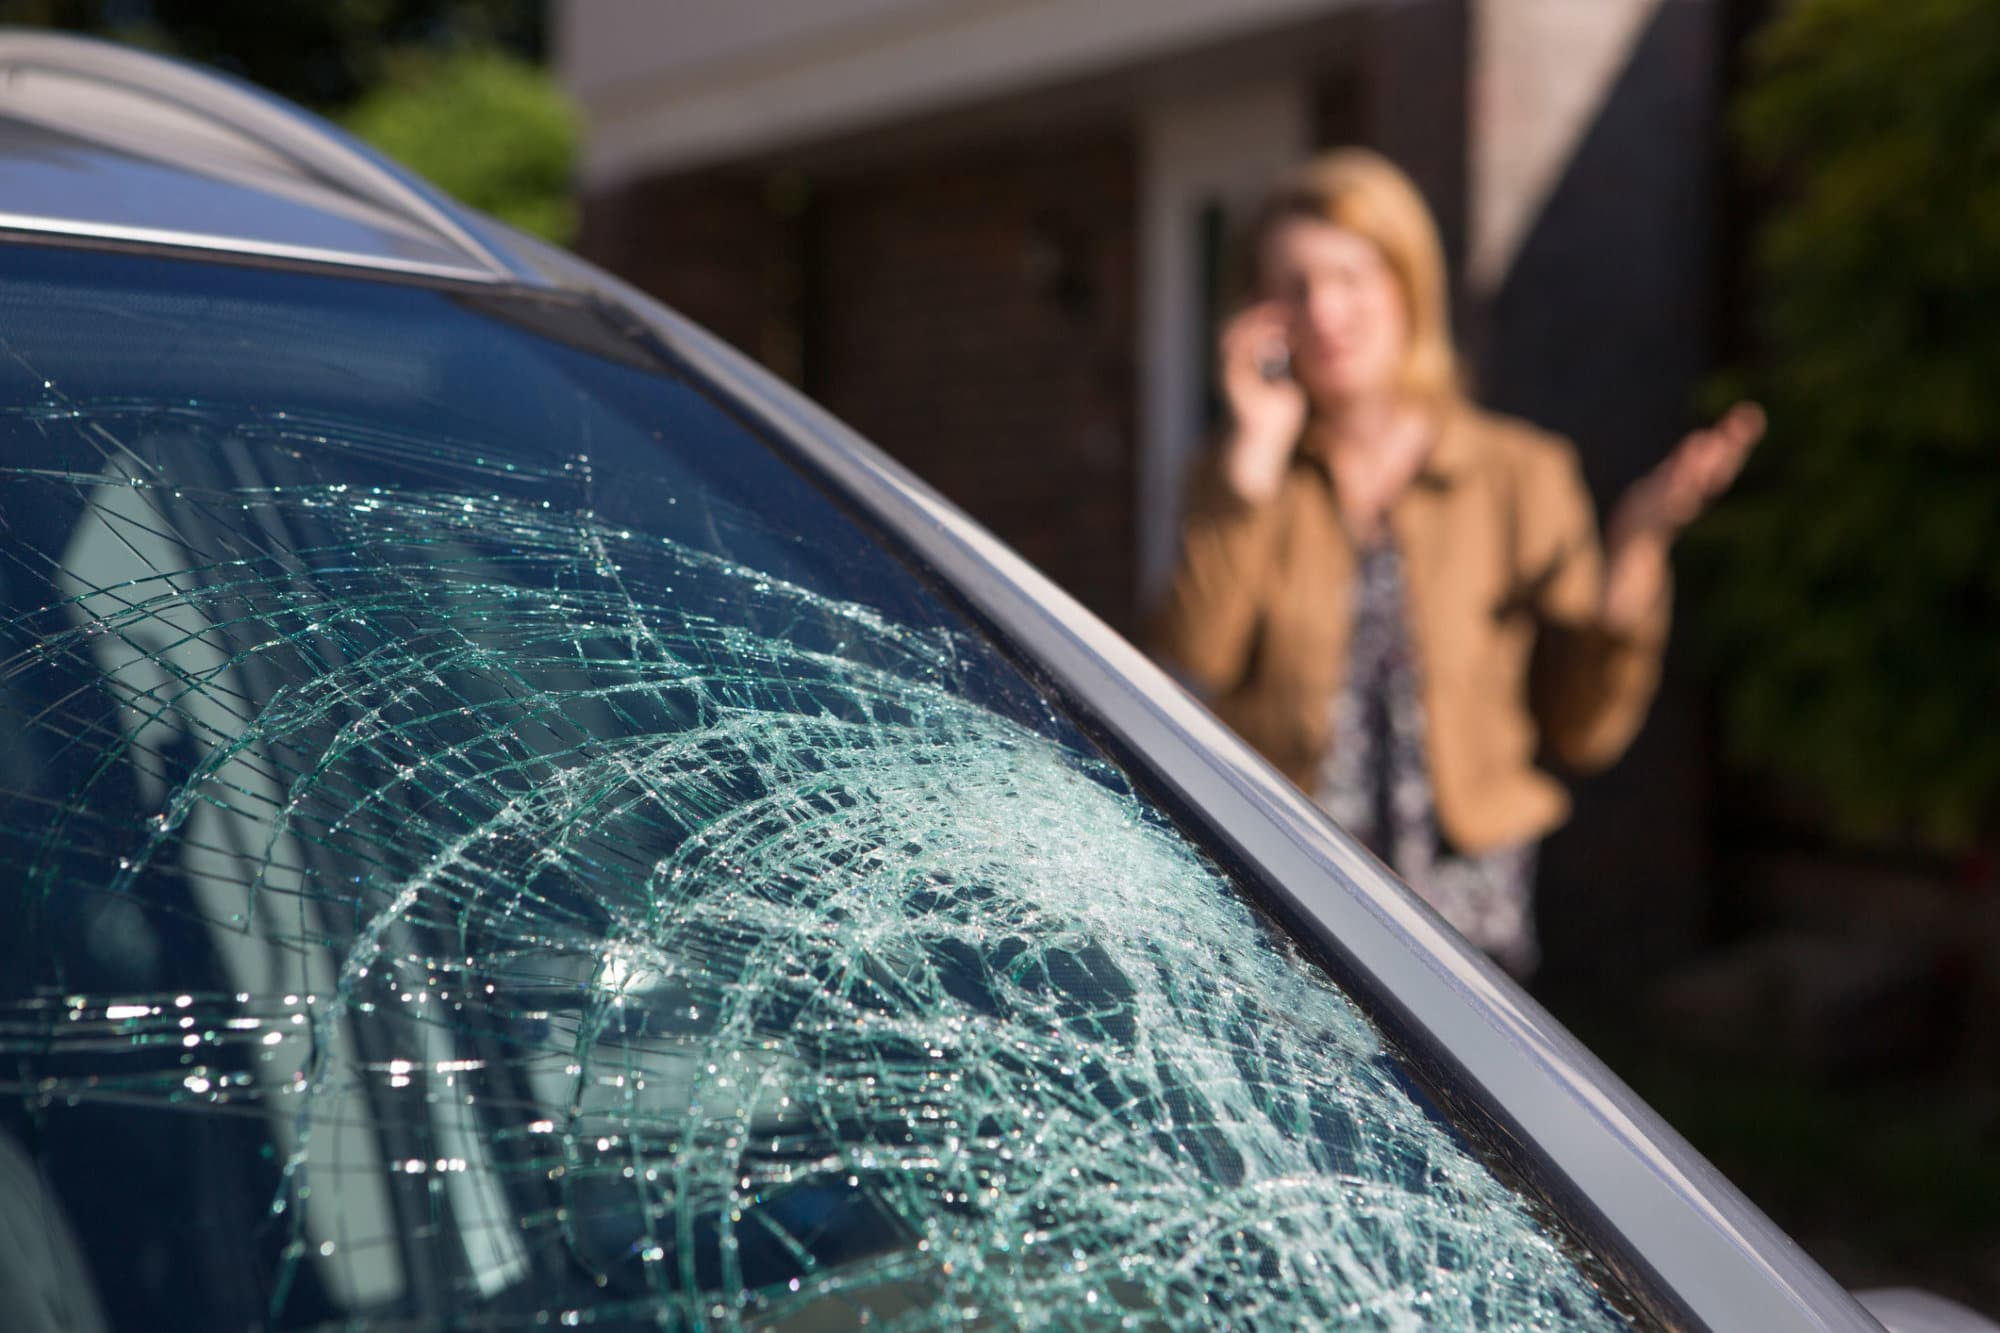 Woman Phoning For Help After Car Windshield Has Broken